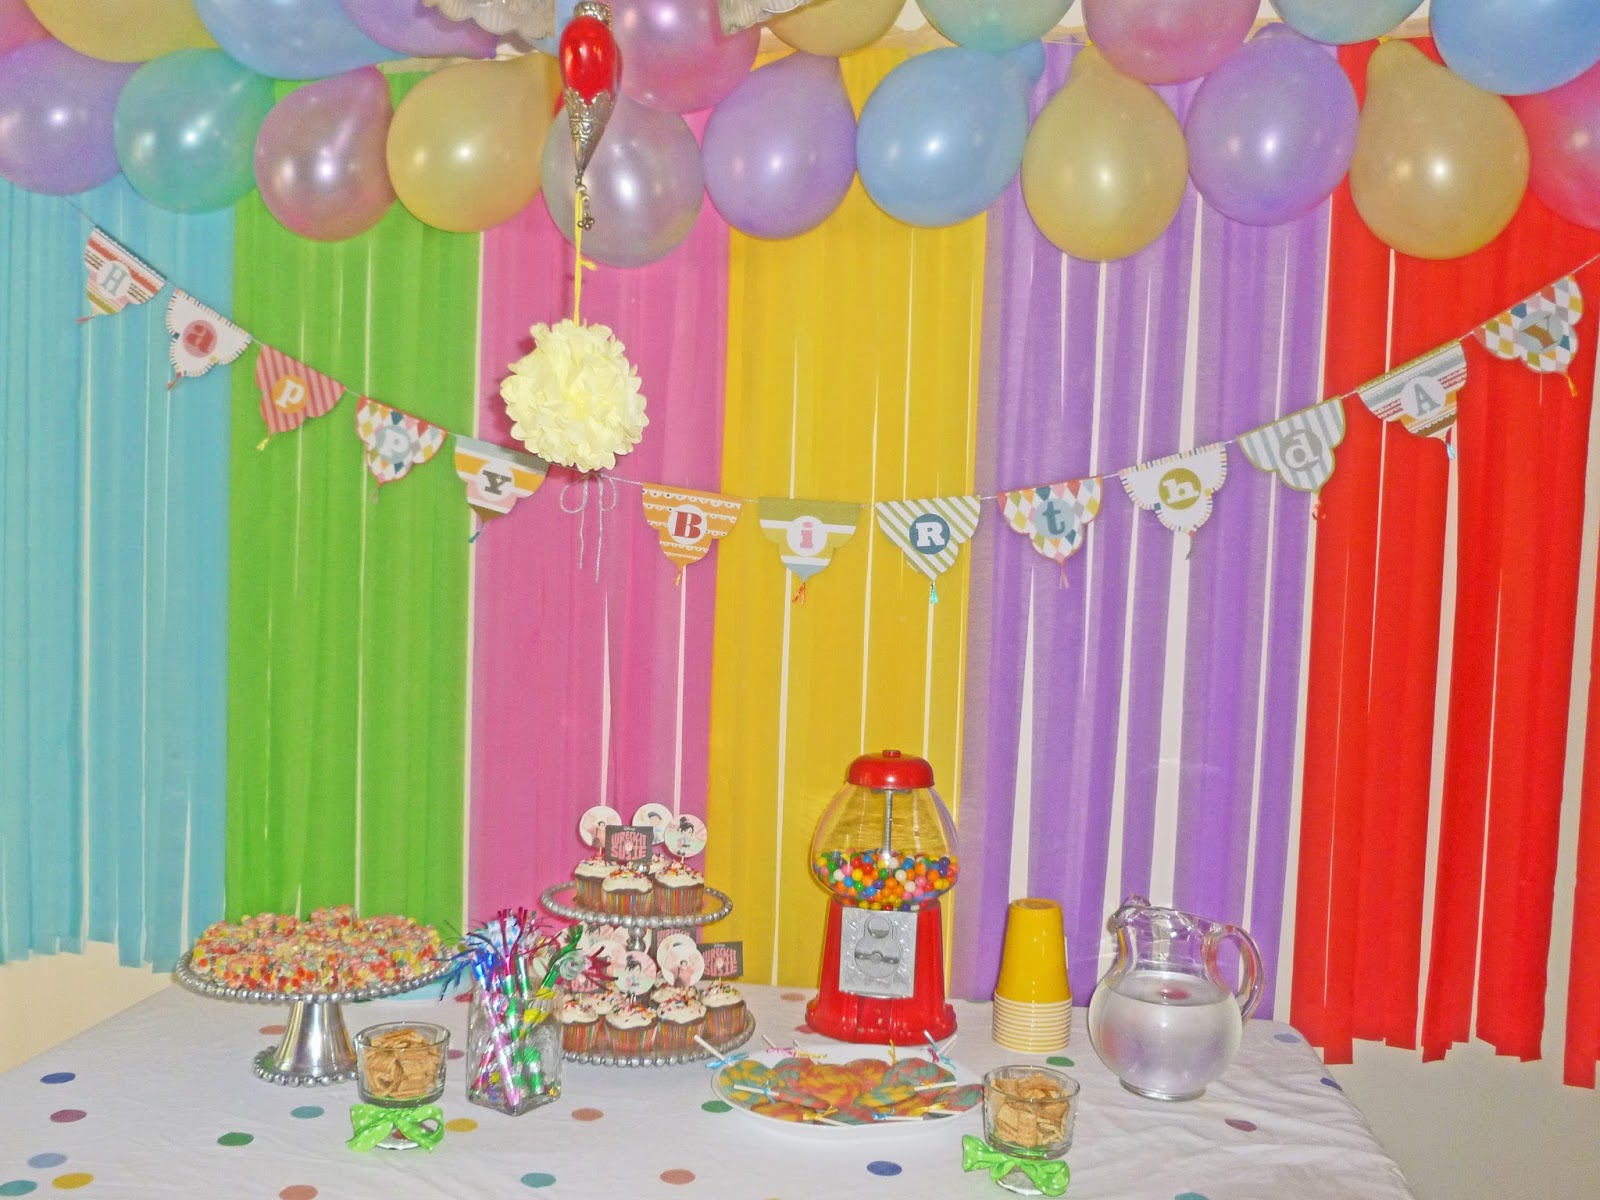 Birthday Party Streamer Decoration Ideas - Elitflat